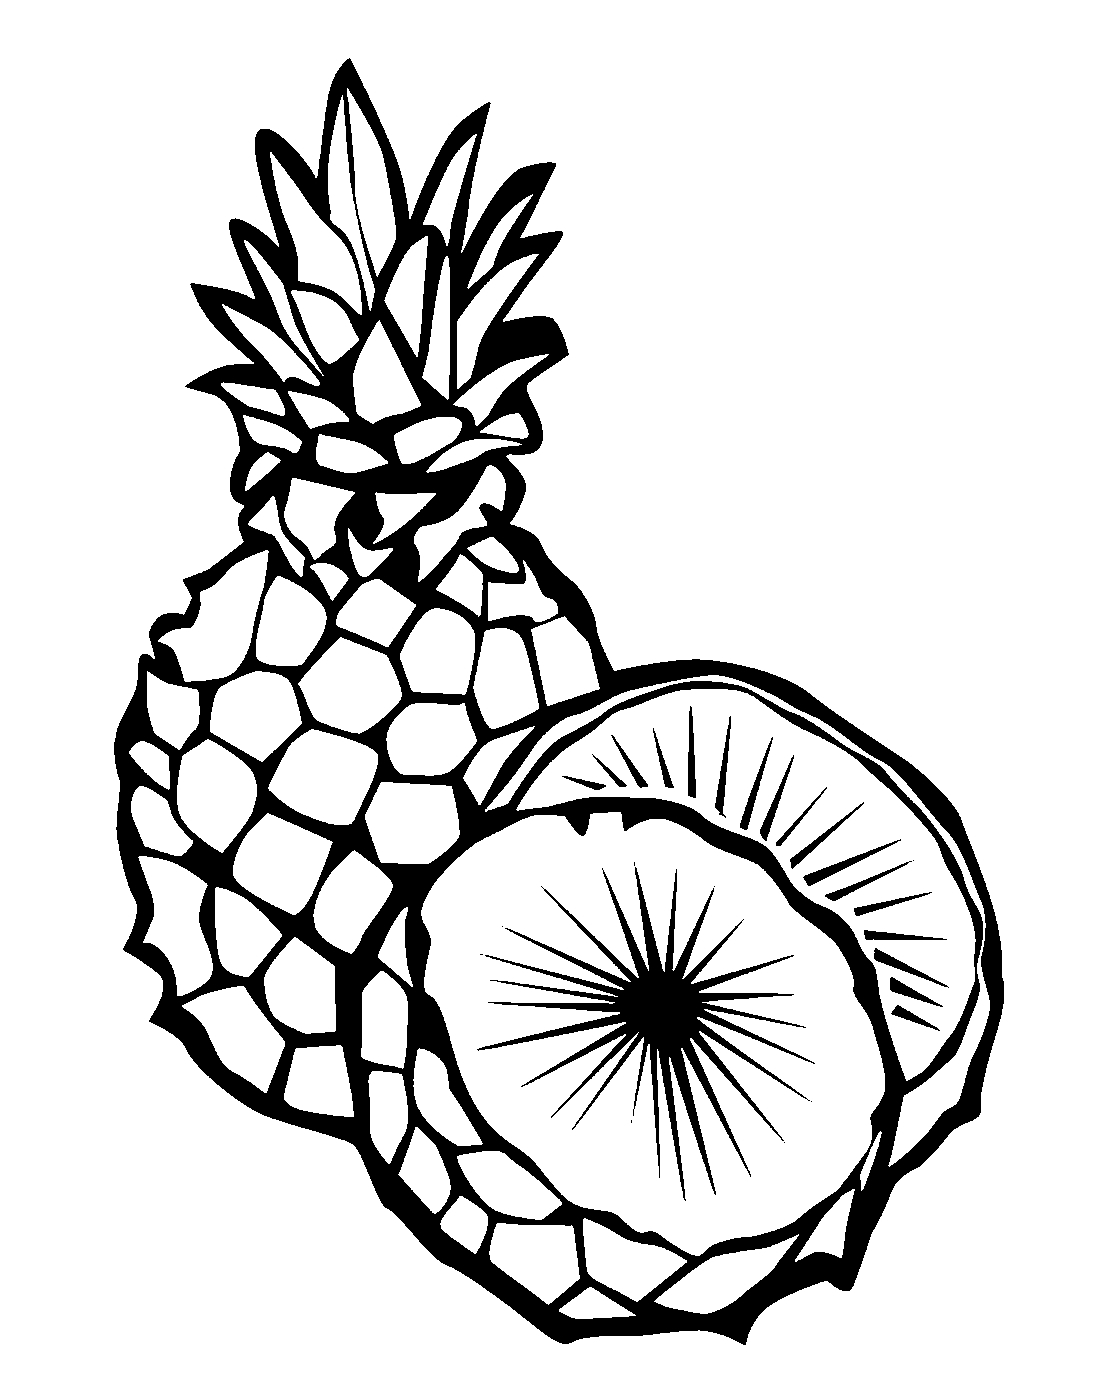 pineapple coloring image image result for pineapple coloring page pineapple image coloring pineapple